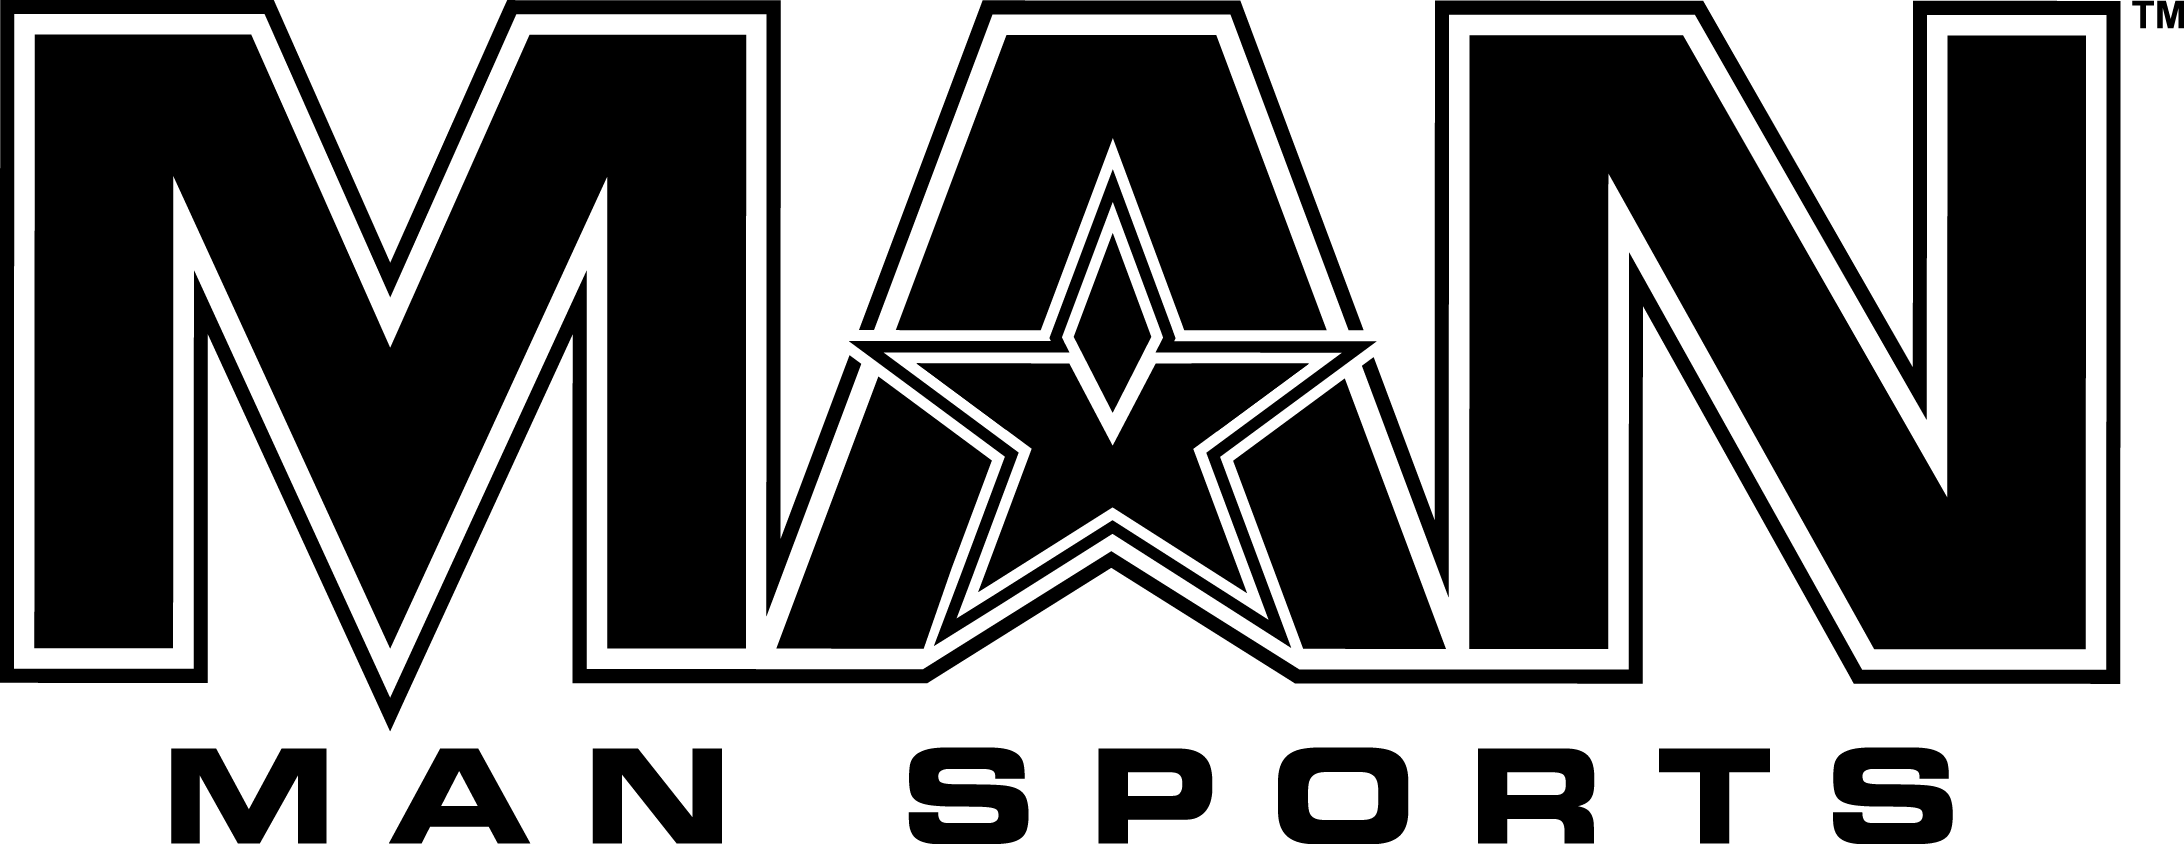 MANSPORTS-LOGO-SOLID-text-tm.png